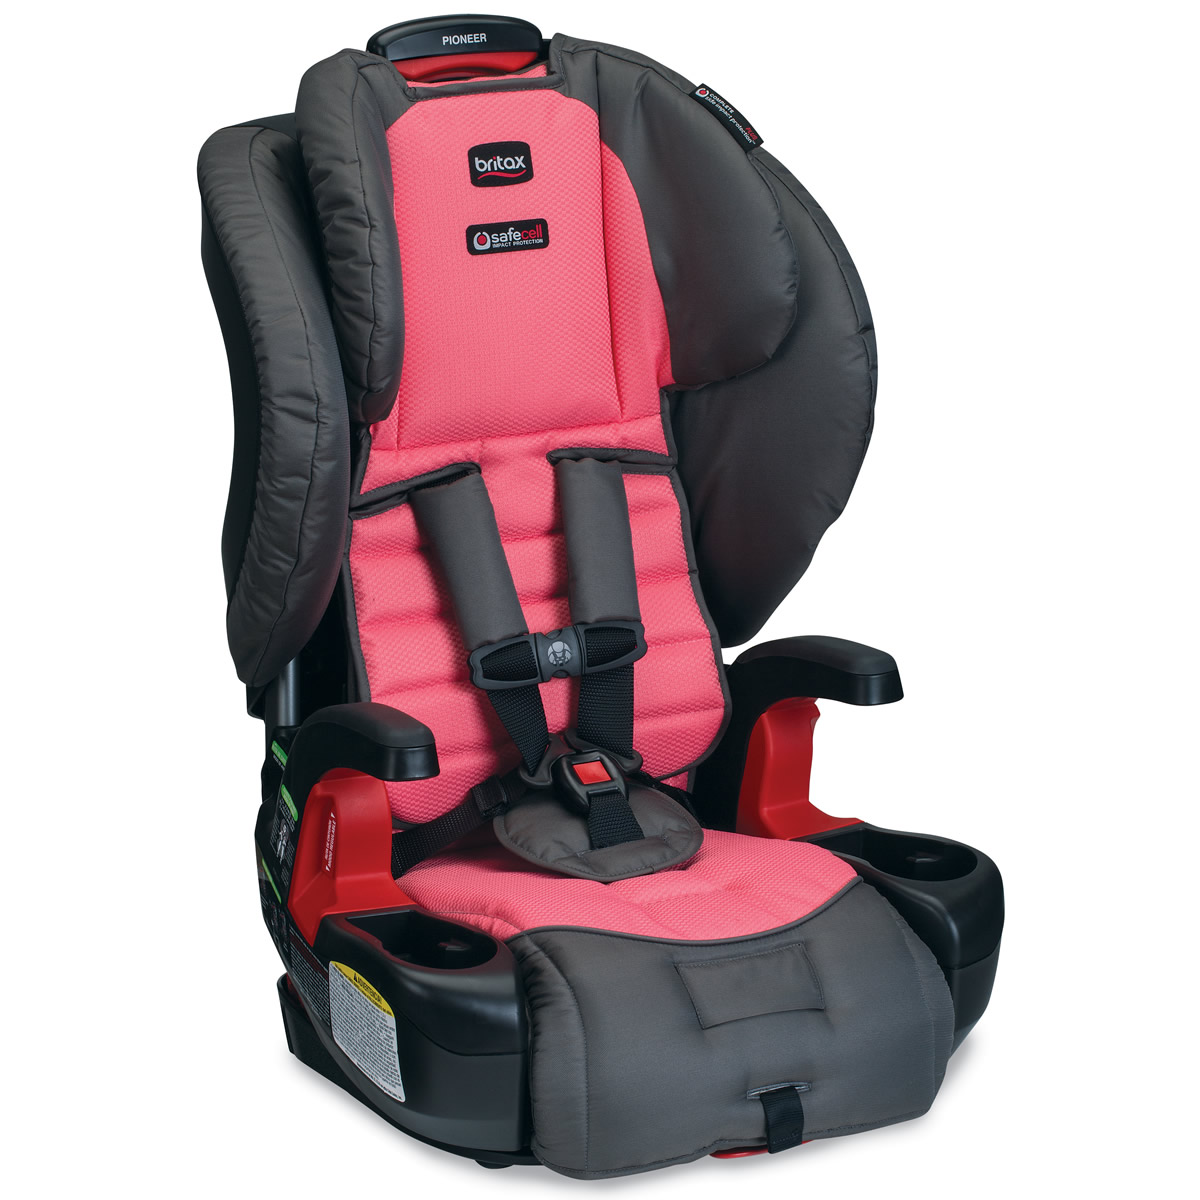 Britax Pioneer Harness Booster Car Seat Coral